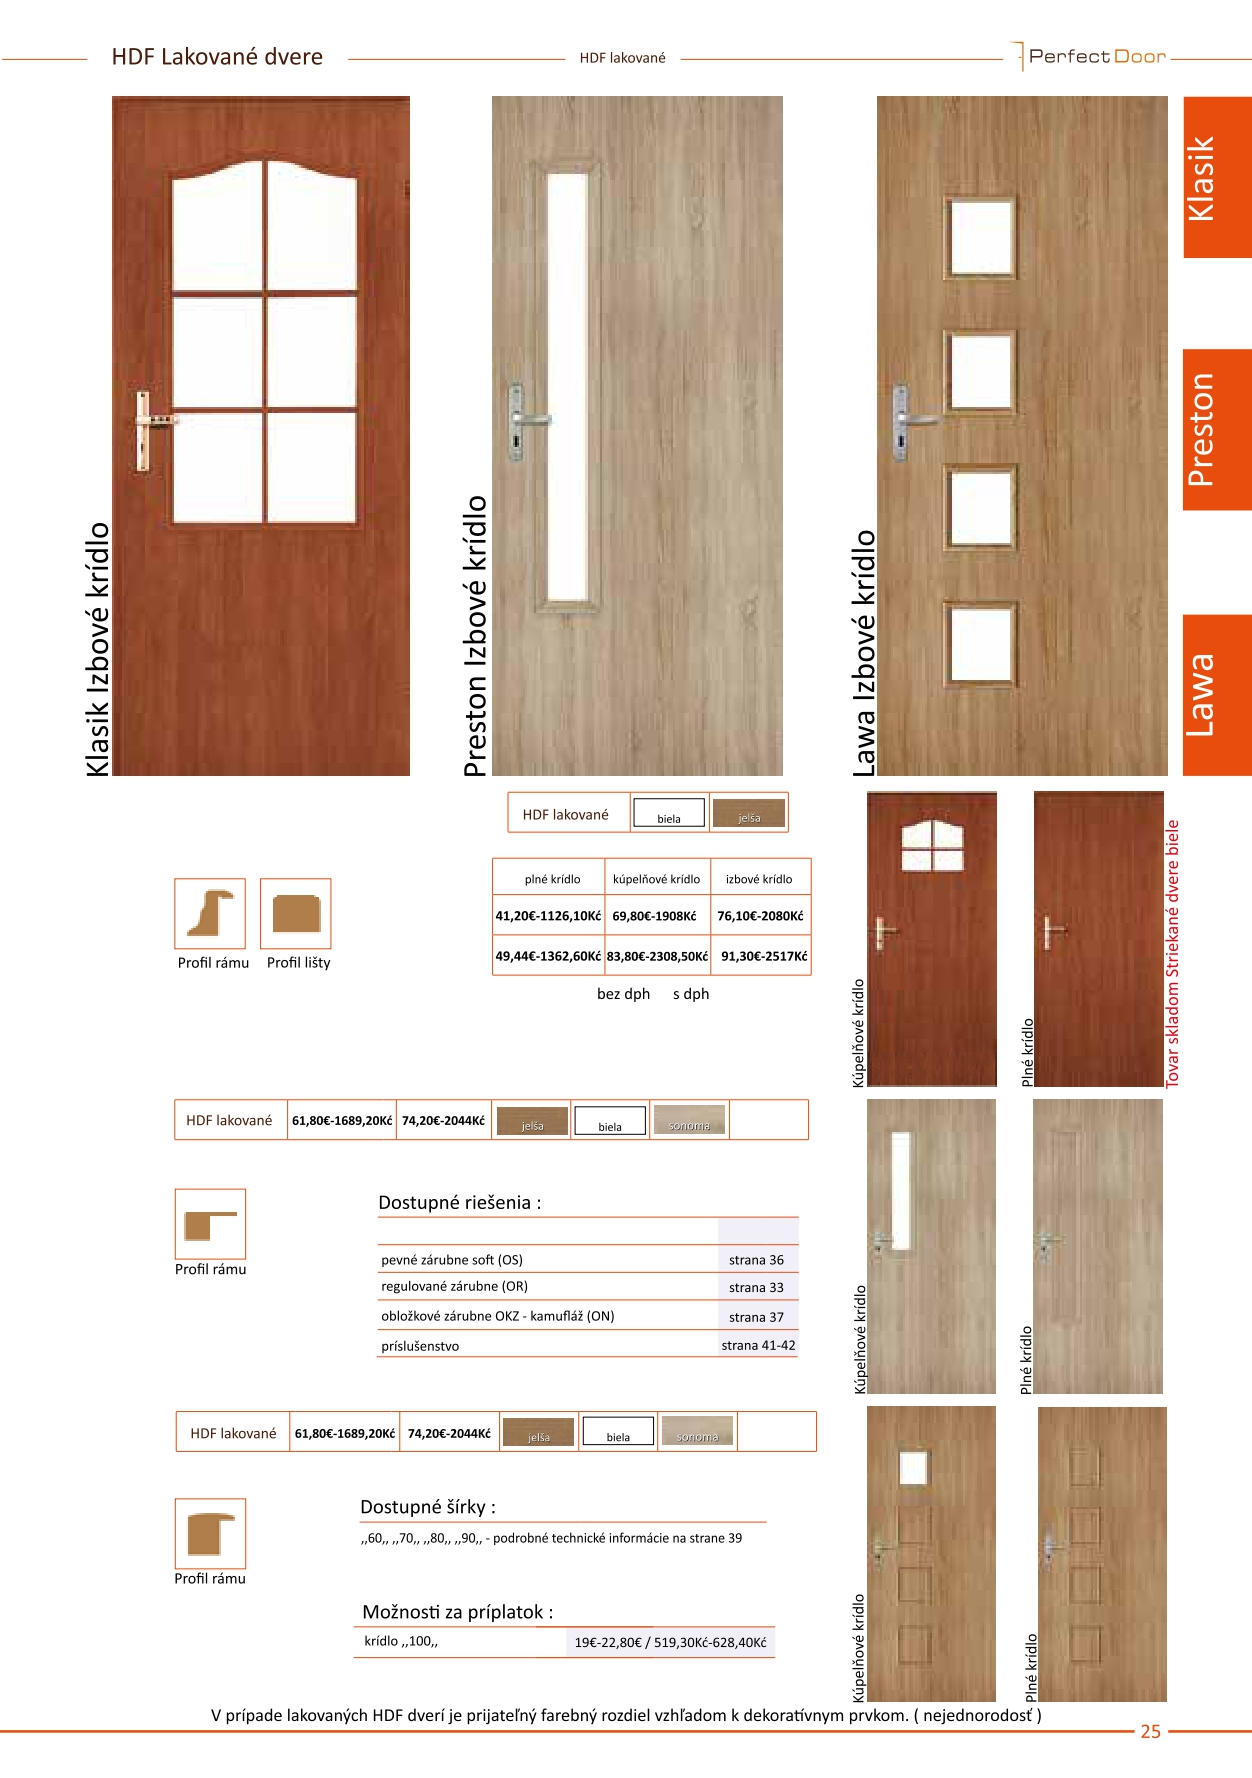 Perfectdoor katalog  1 2019 pages-to-jpg-0025